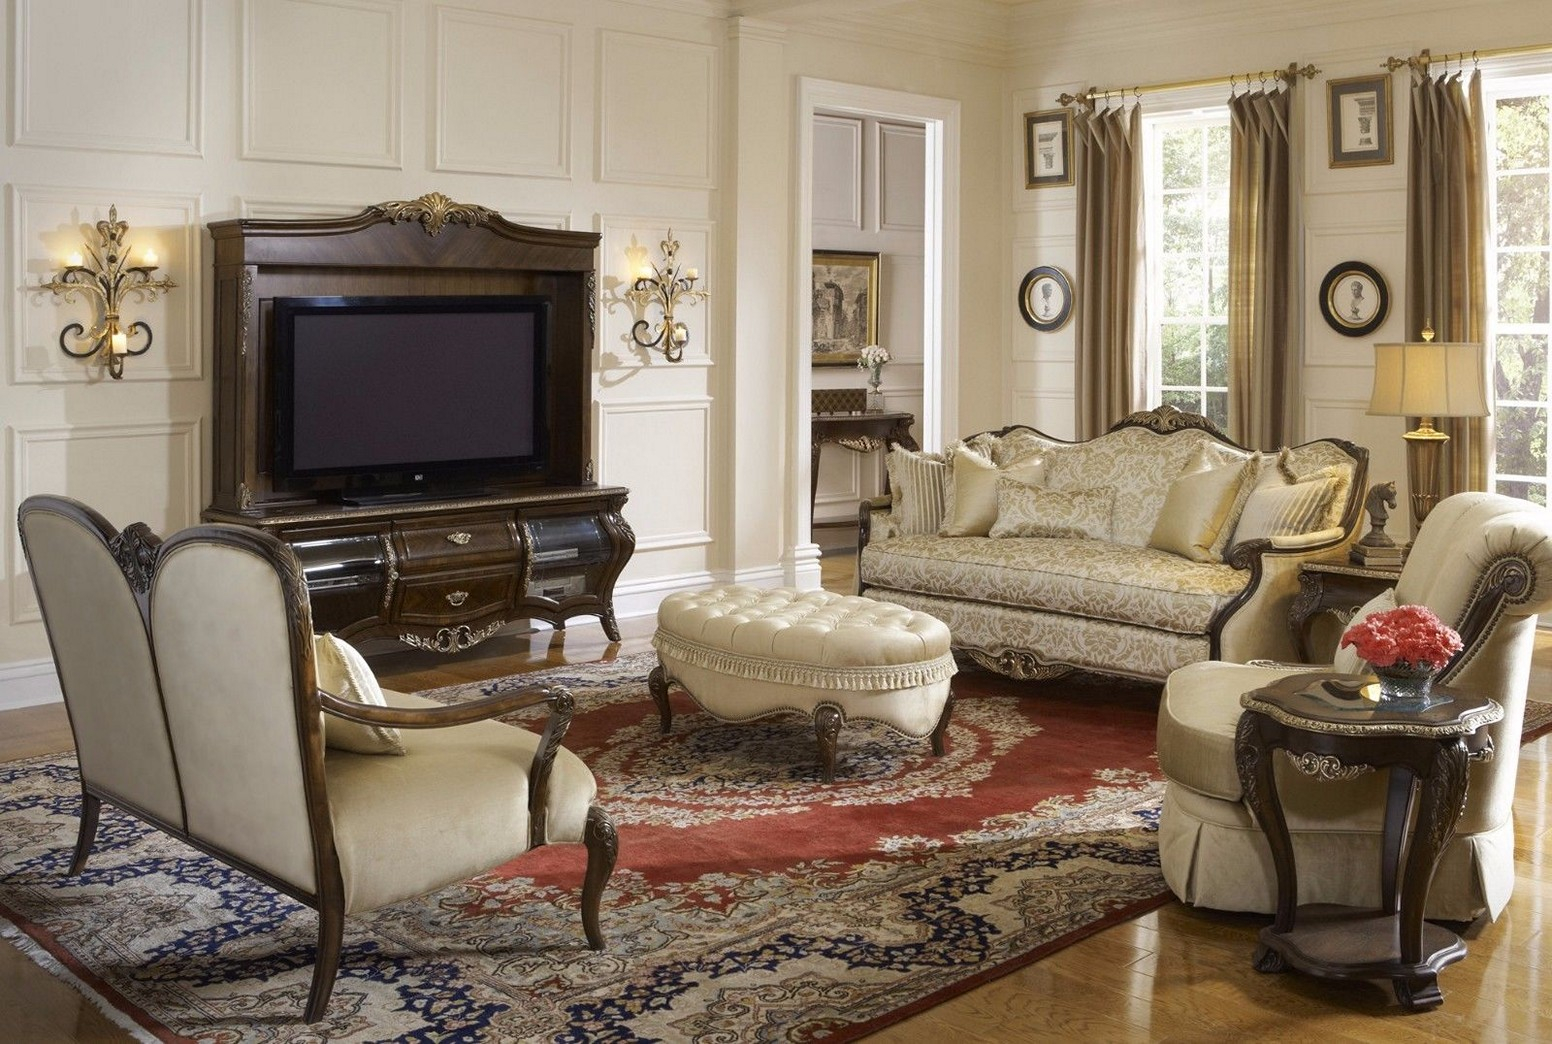 Living Room Furniture Sets With Free Tv Eo Furniture throughout 13 Clever Ideas How to Improve Living Room Sets With Free TV